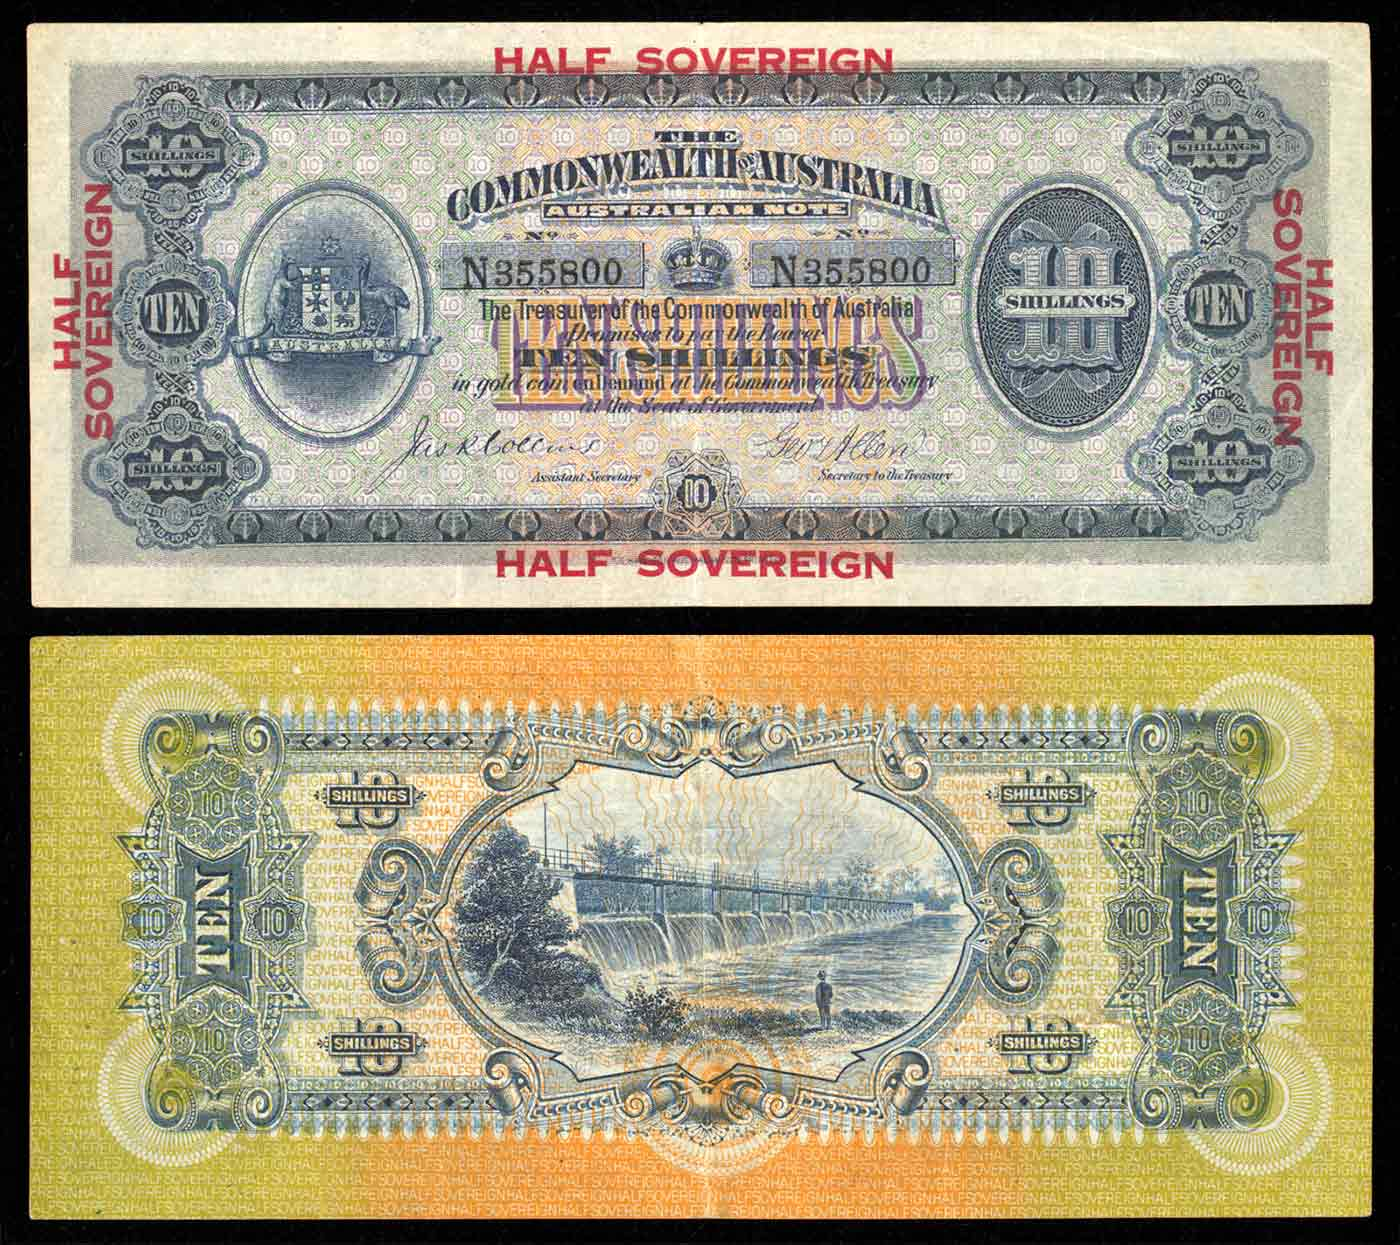 Front and back of a 10-shilling banknote. 'HALF SOVEREIGN' is printed in red on the front. An image of a man standing before a spillway is printed on the back.